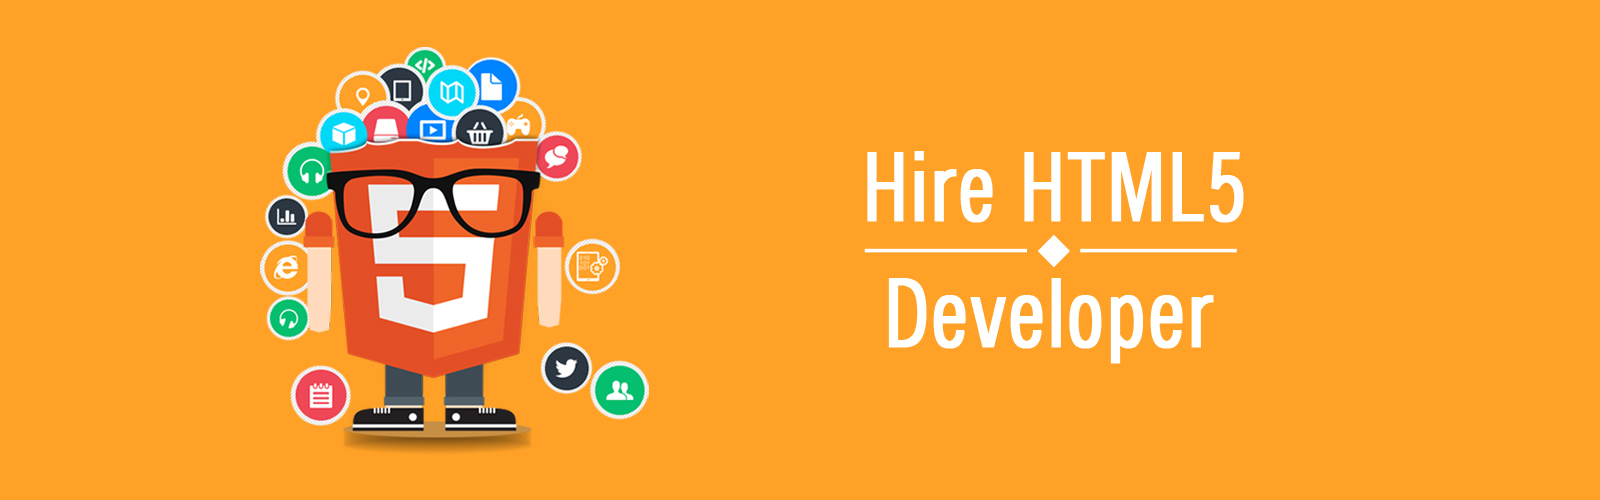 Hire HTML5 Developer